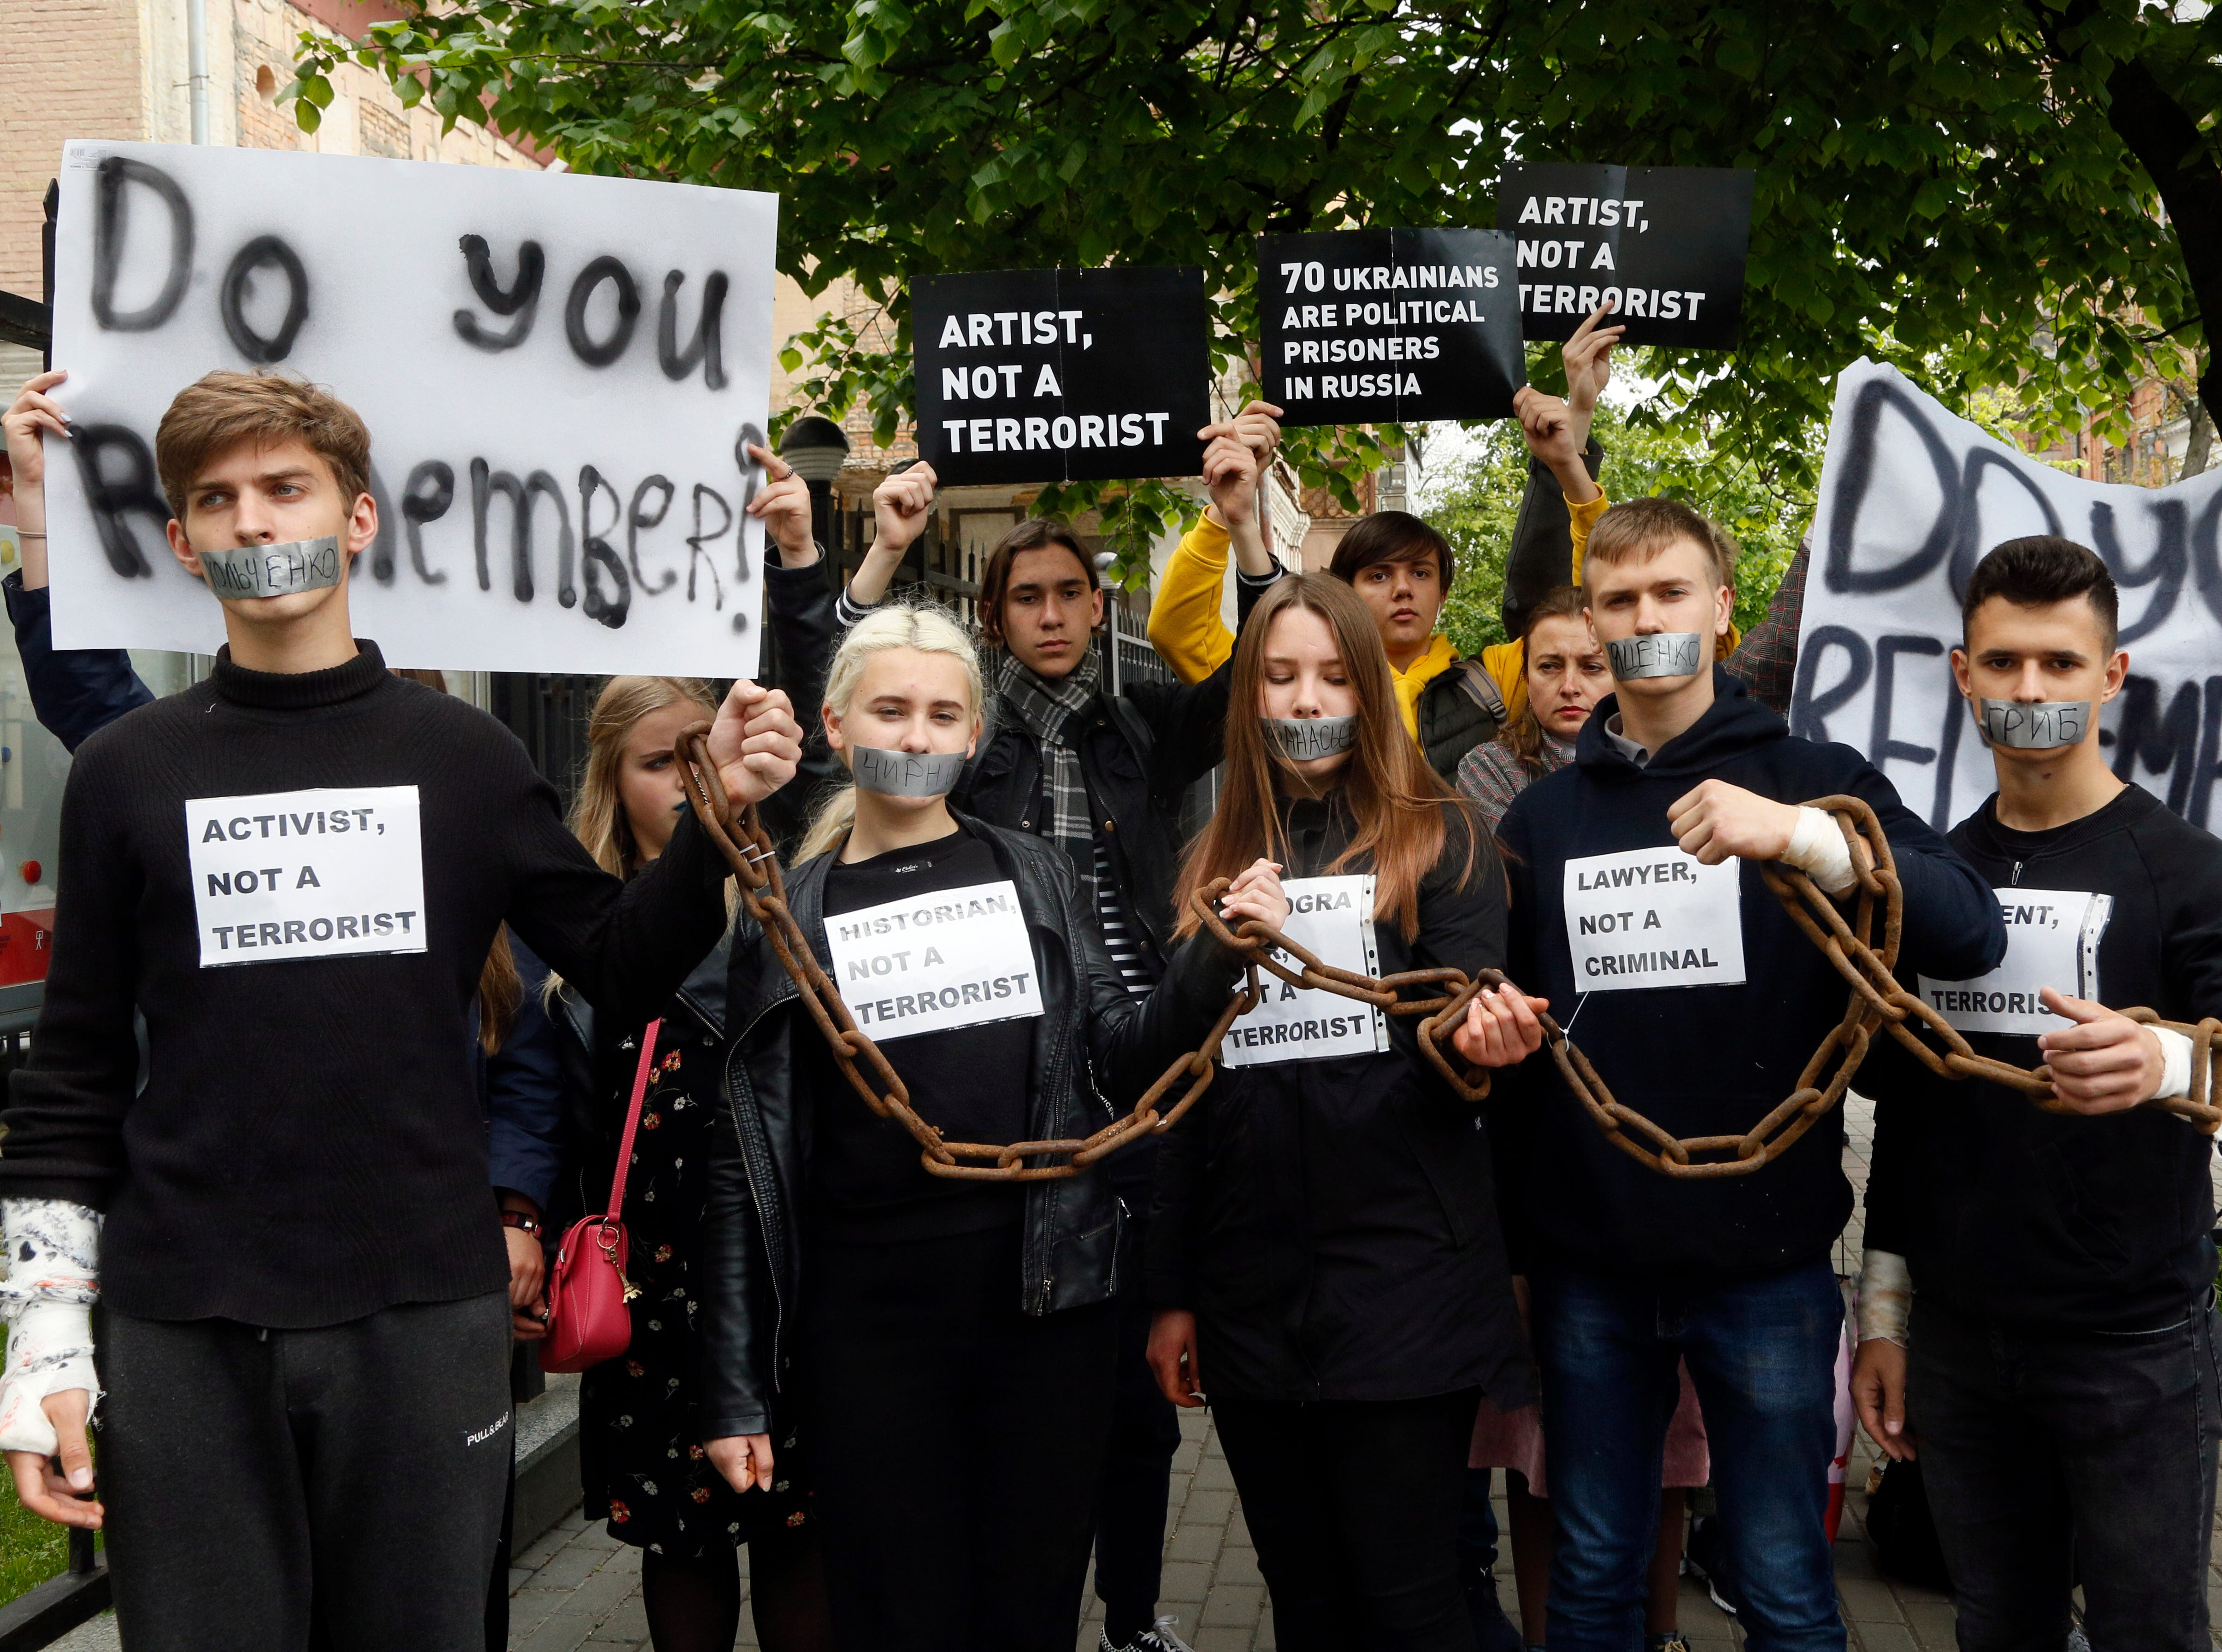 Activists, with their mouths covered by band-aids, stand chained together, in central Kiev, Ukraine, Friday, May 10, 2019. The activists performed a symbolic march to the embassies of the European Council member states and handed over the letters to highlight the fact that Ukrainian political prisoners are still being kept in Russian jails.